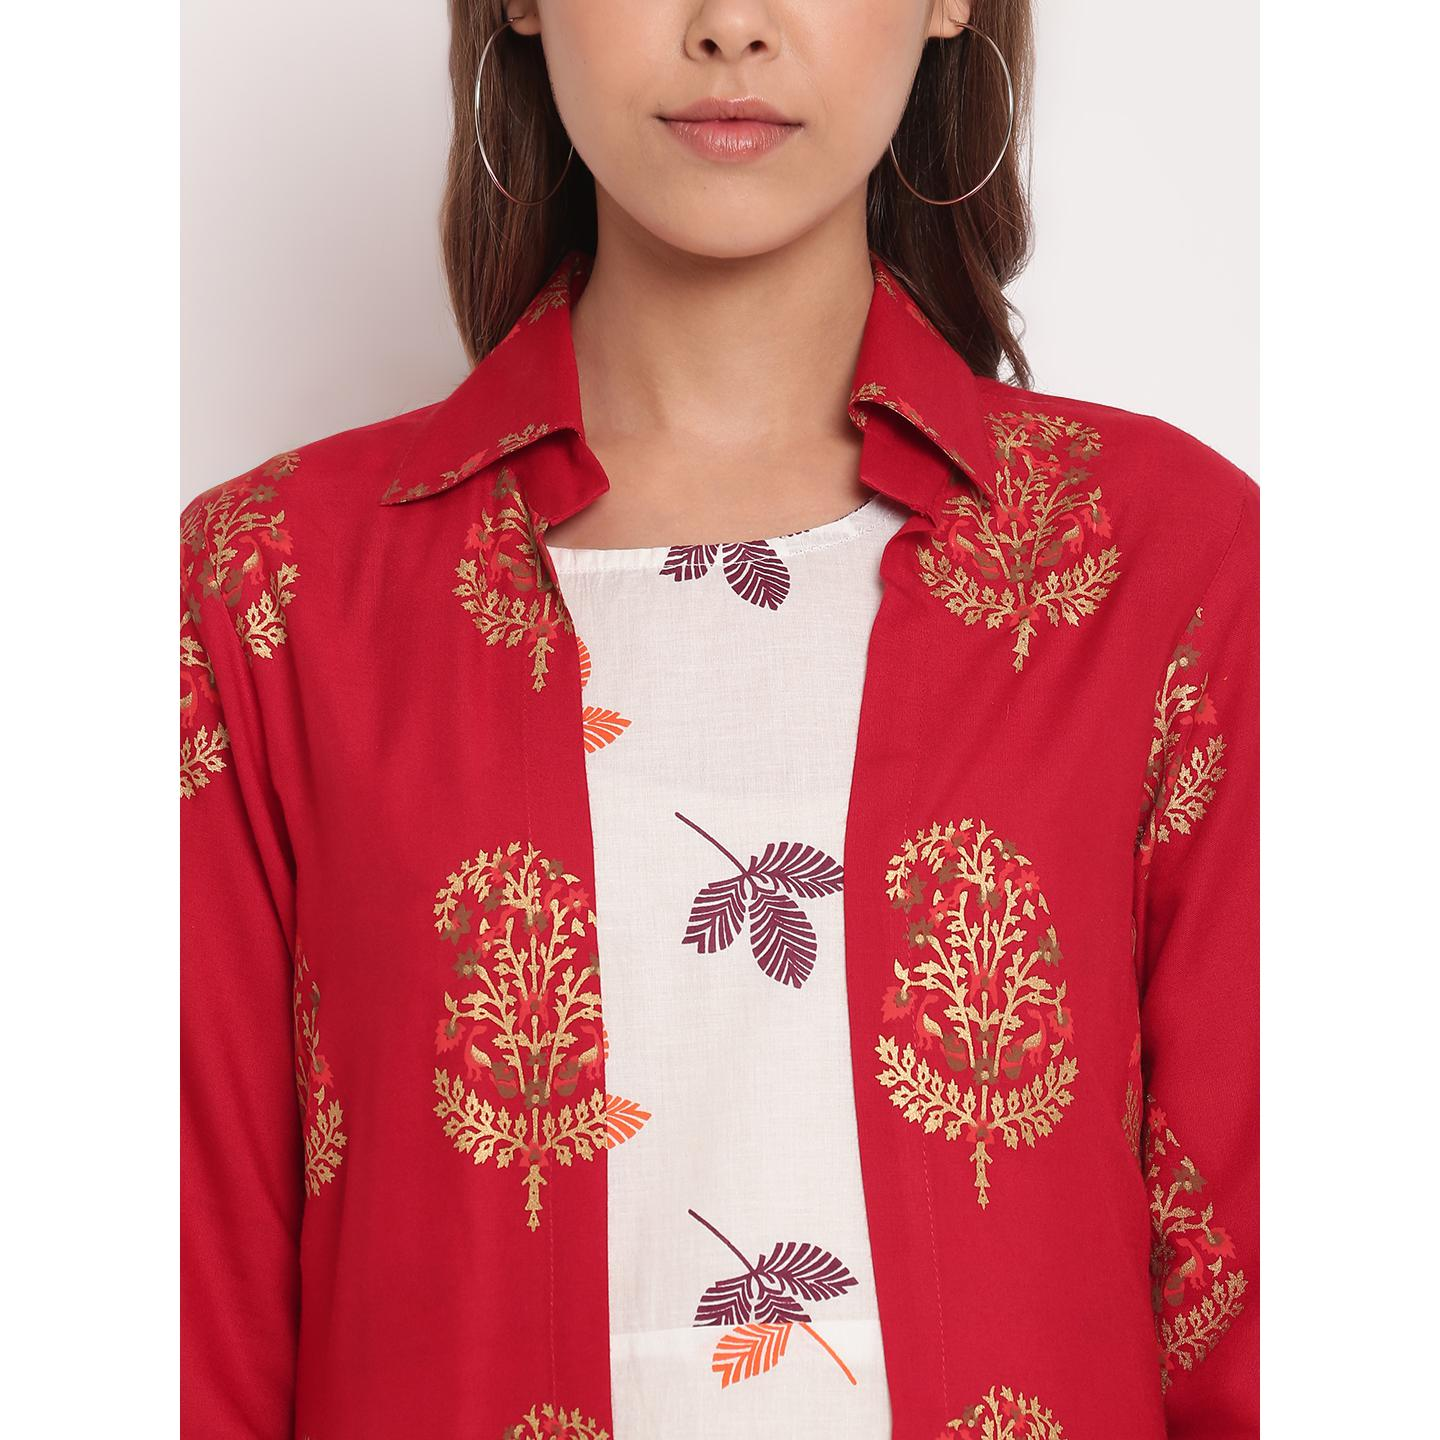 Jazzy White-Red Colored Party Wear Floral Printed Ankle Length Rayon-Cotton Kurti With jacket